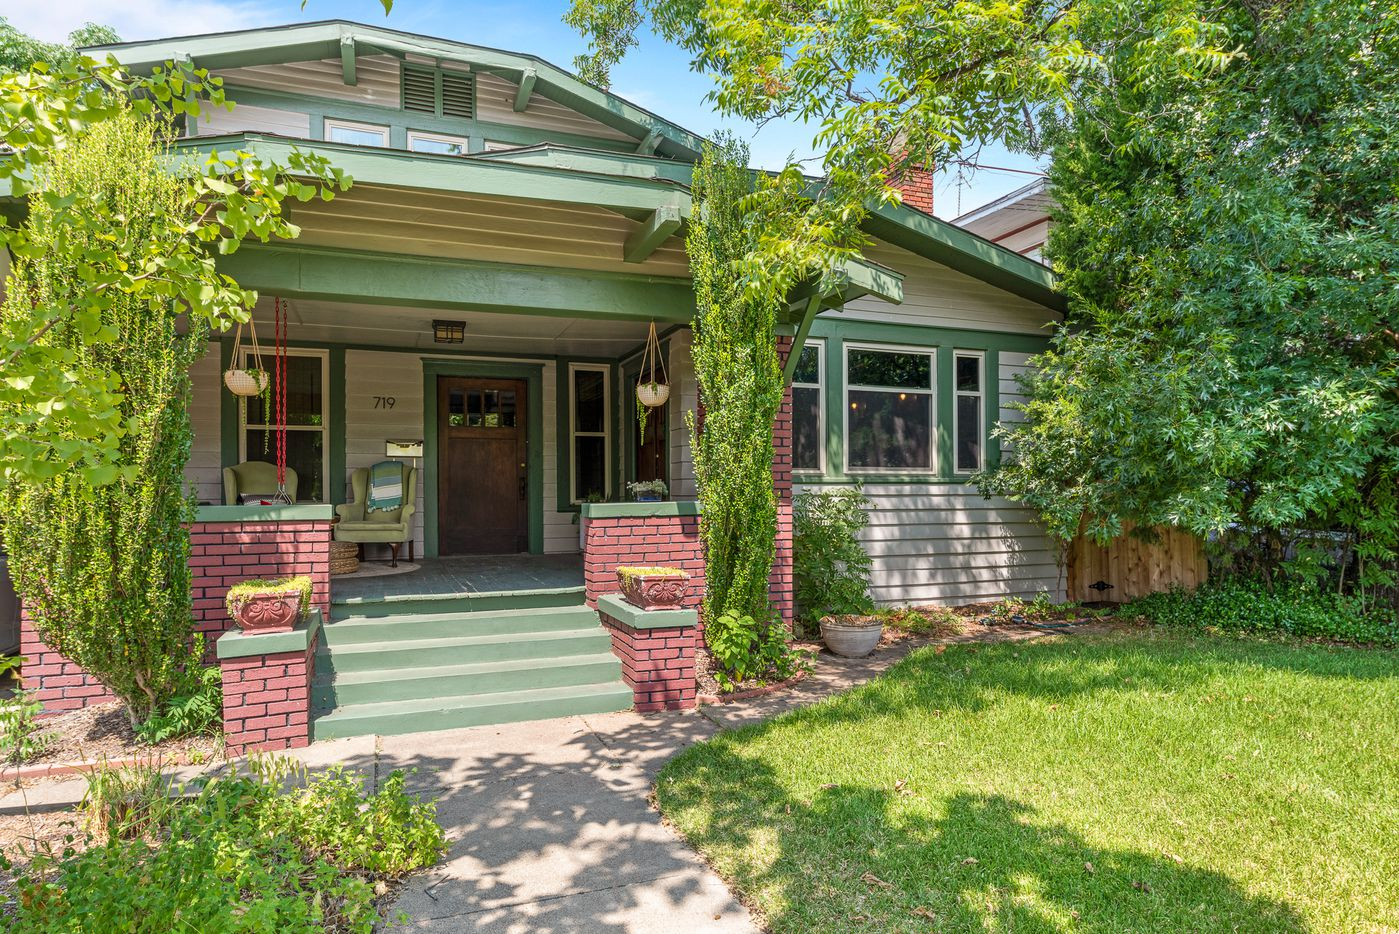 A look at 719 N. Bishop Avenue in Dallas, one of the houses on the 2019 Heritage Oak Cliff Home Tour.